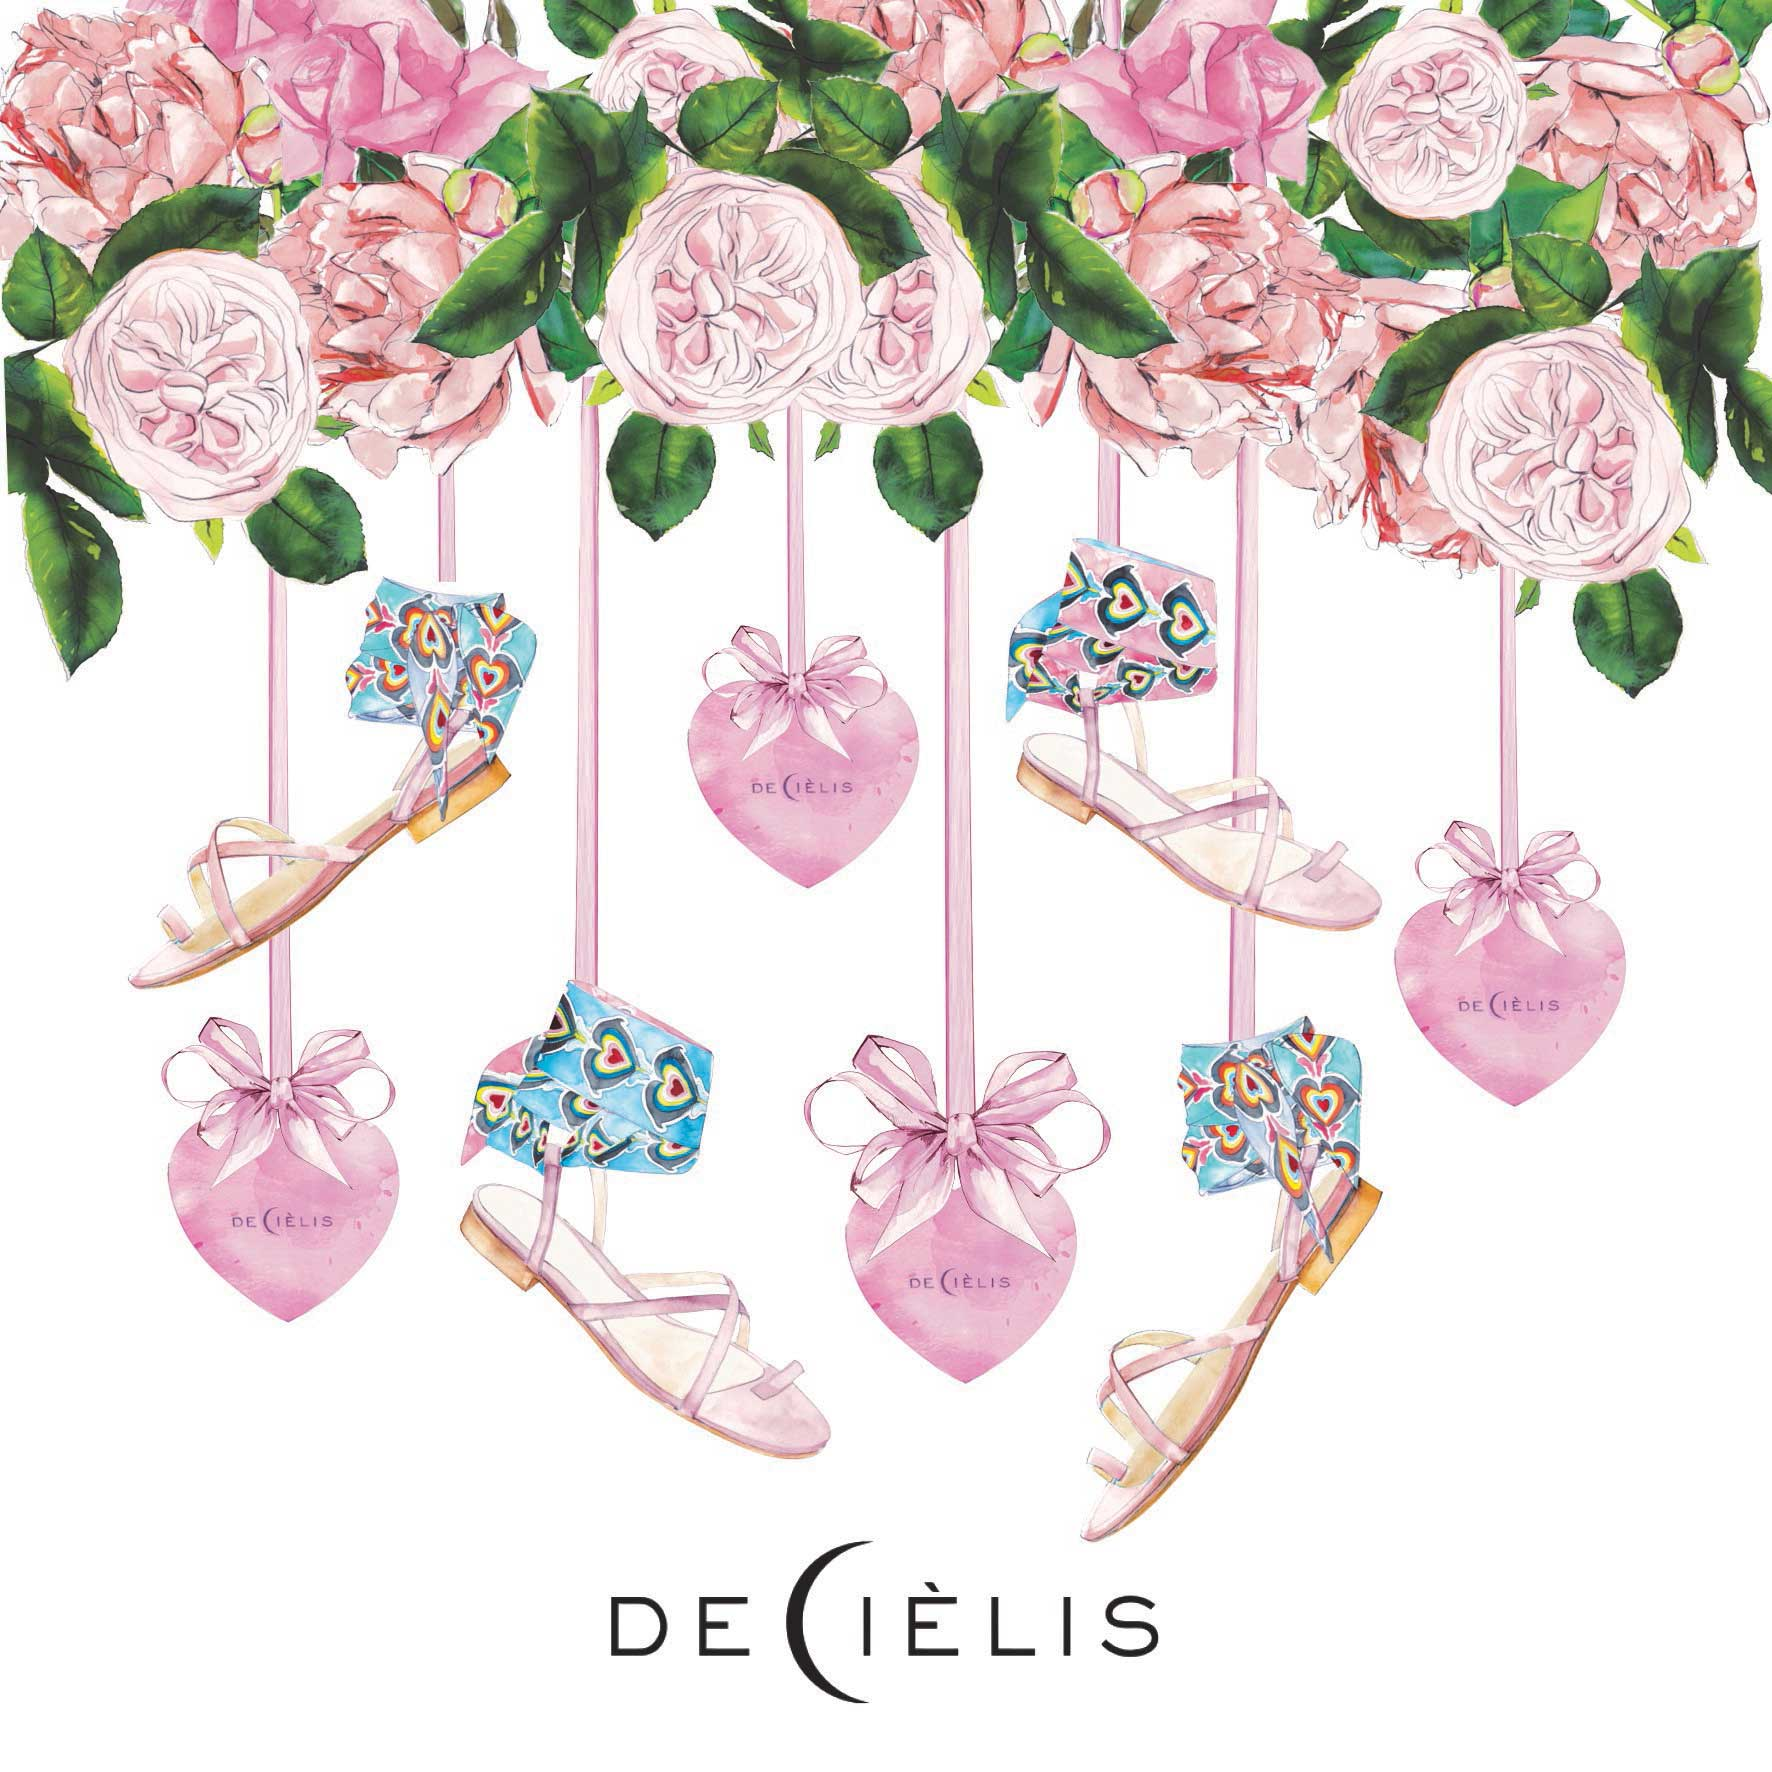 Your Decièlis Lust List this Valentine's Day